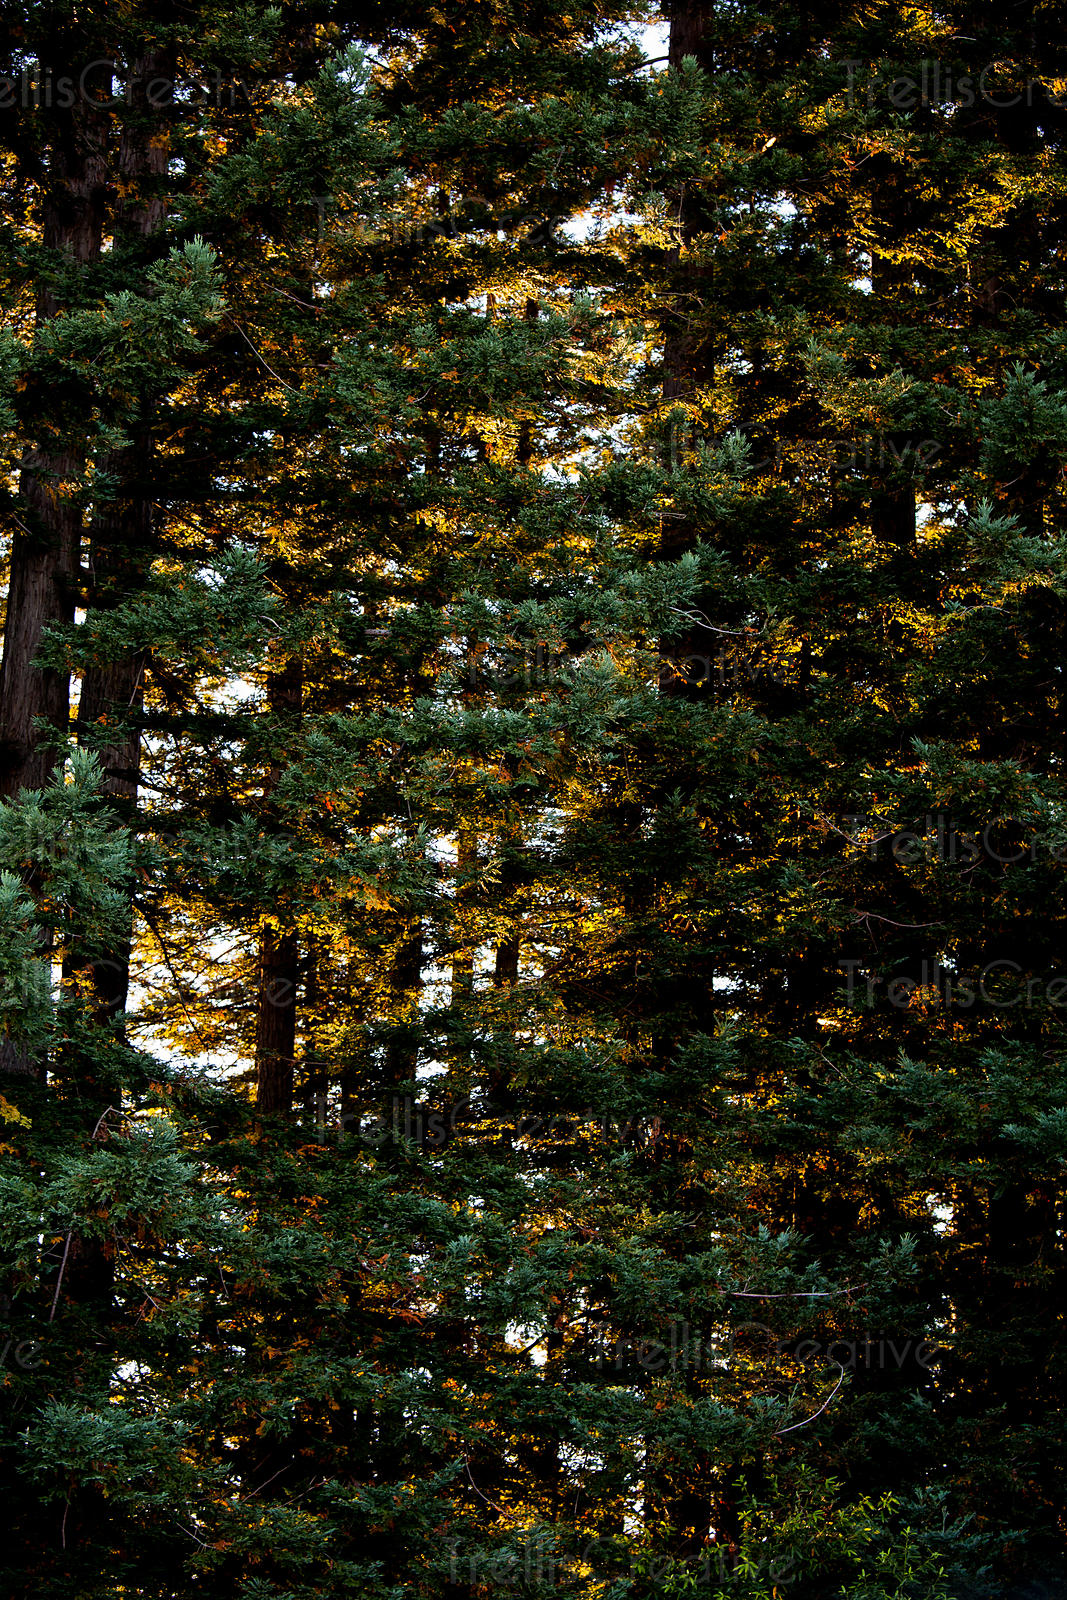 Tall coniferous trees with a dense canopy